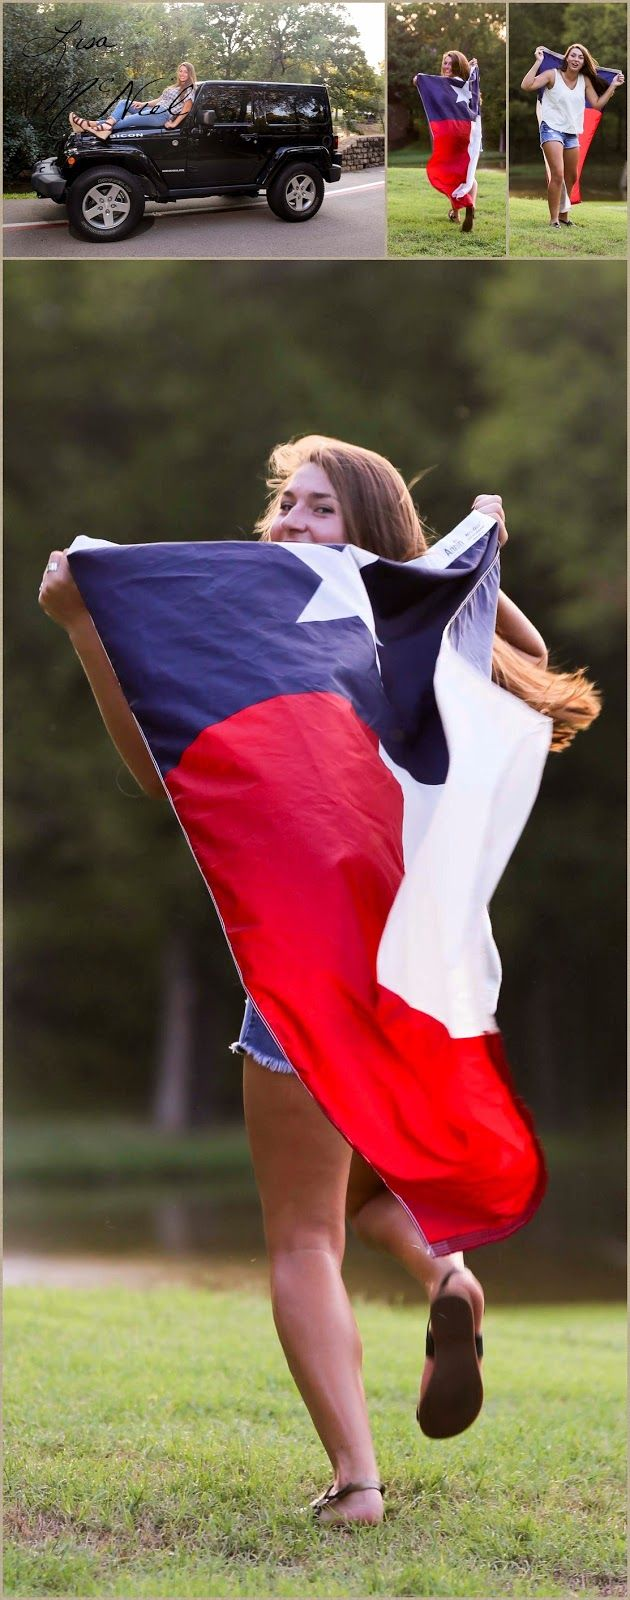 senior picture ideas, Texas flag, posing, laughing, girls, outfits, portraits, lake, water, creative, urban, click the pic for more from Flower Mound, Dallas Photographer